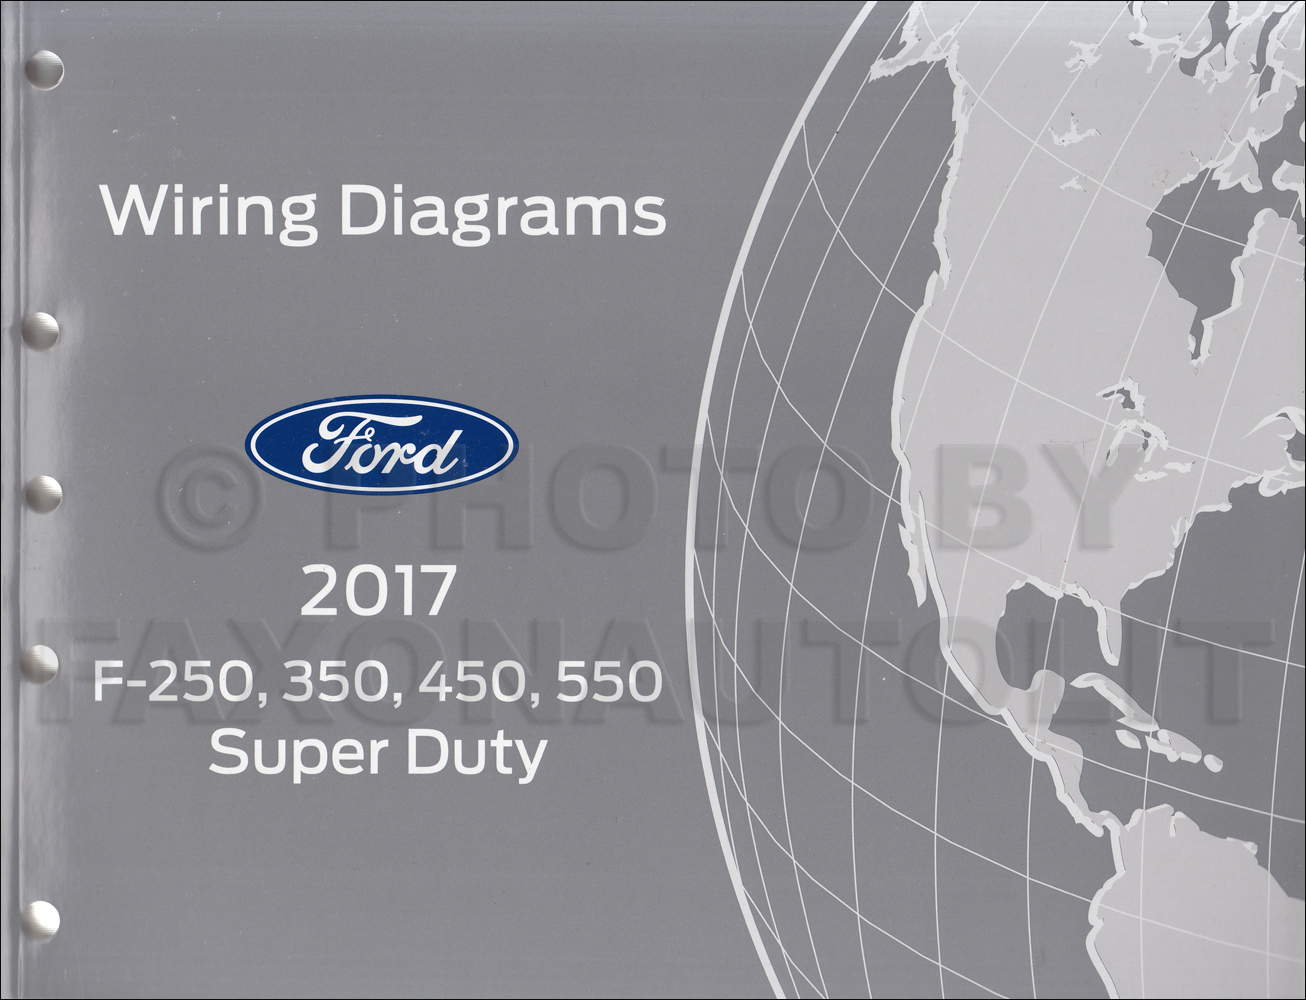 2017 Ford F250F550 Super DutyTruck    Wiring       Diagram    Manual